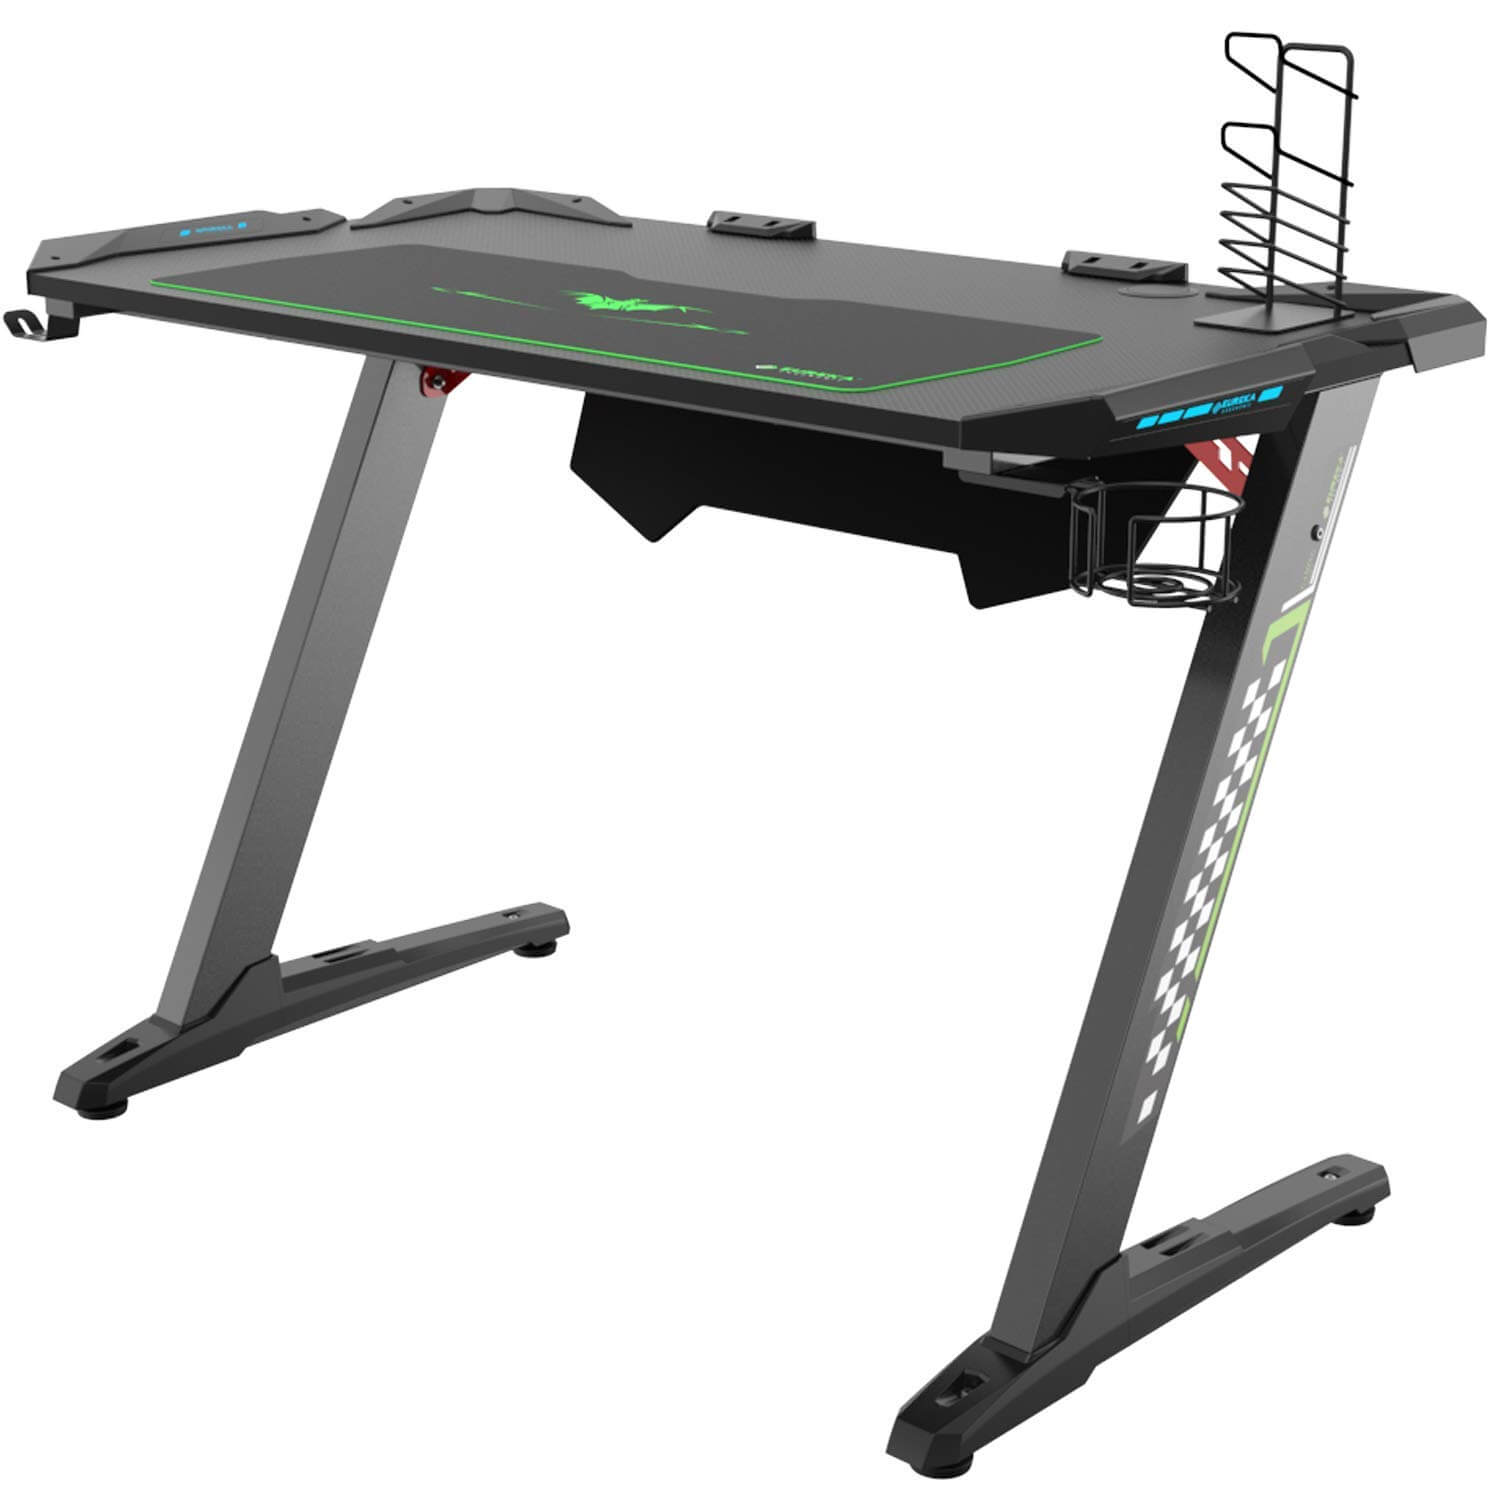 20 Best Gaming Desks  Ultimate List and Reviews